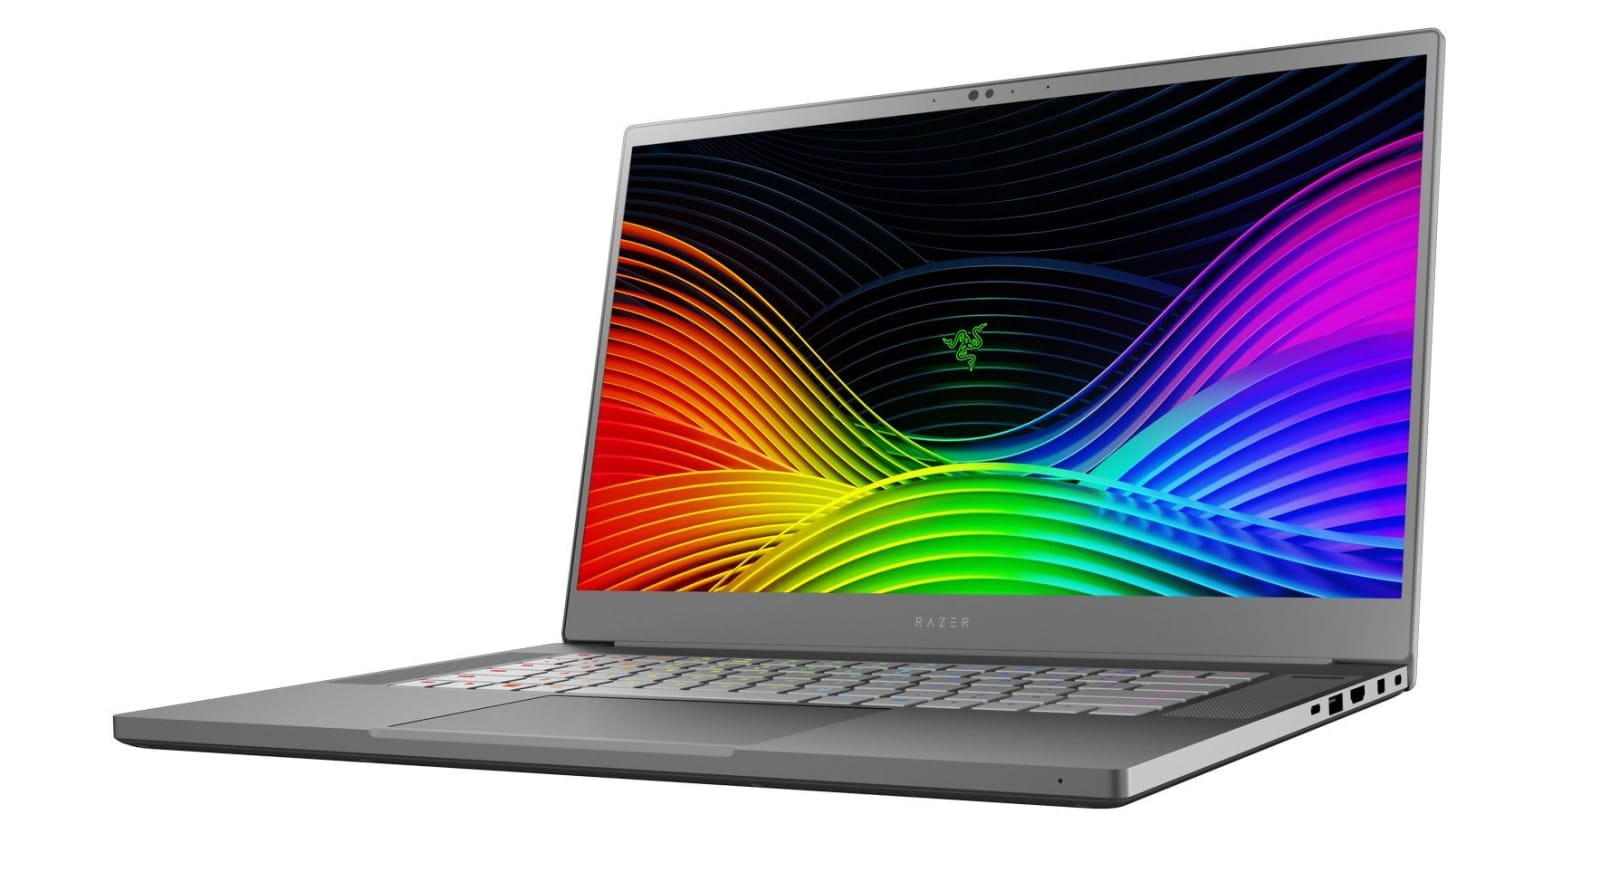 Razer's first workstation laptop is cheaper than you'd expect